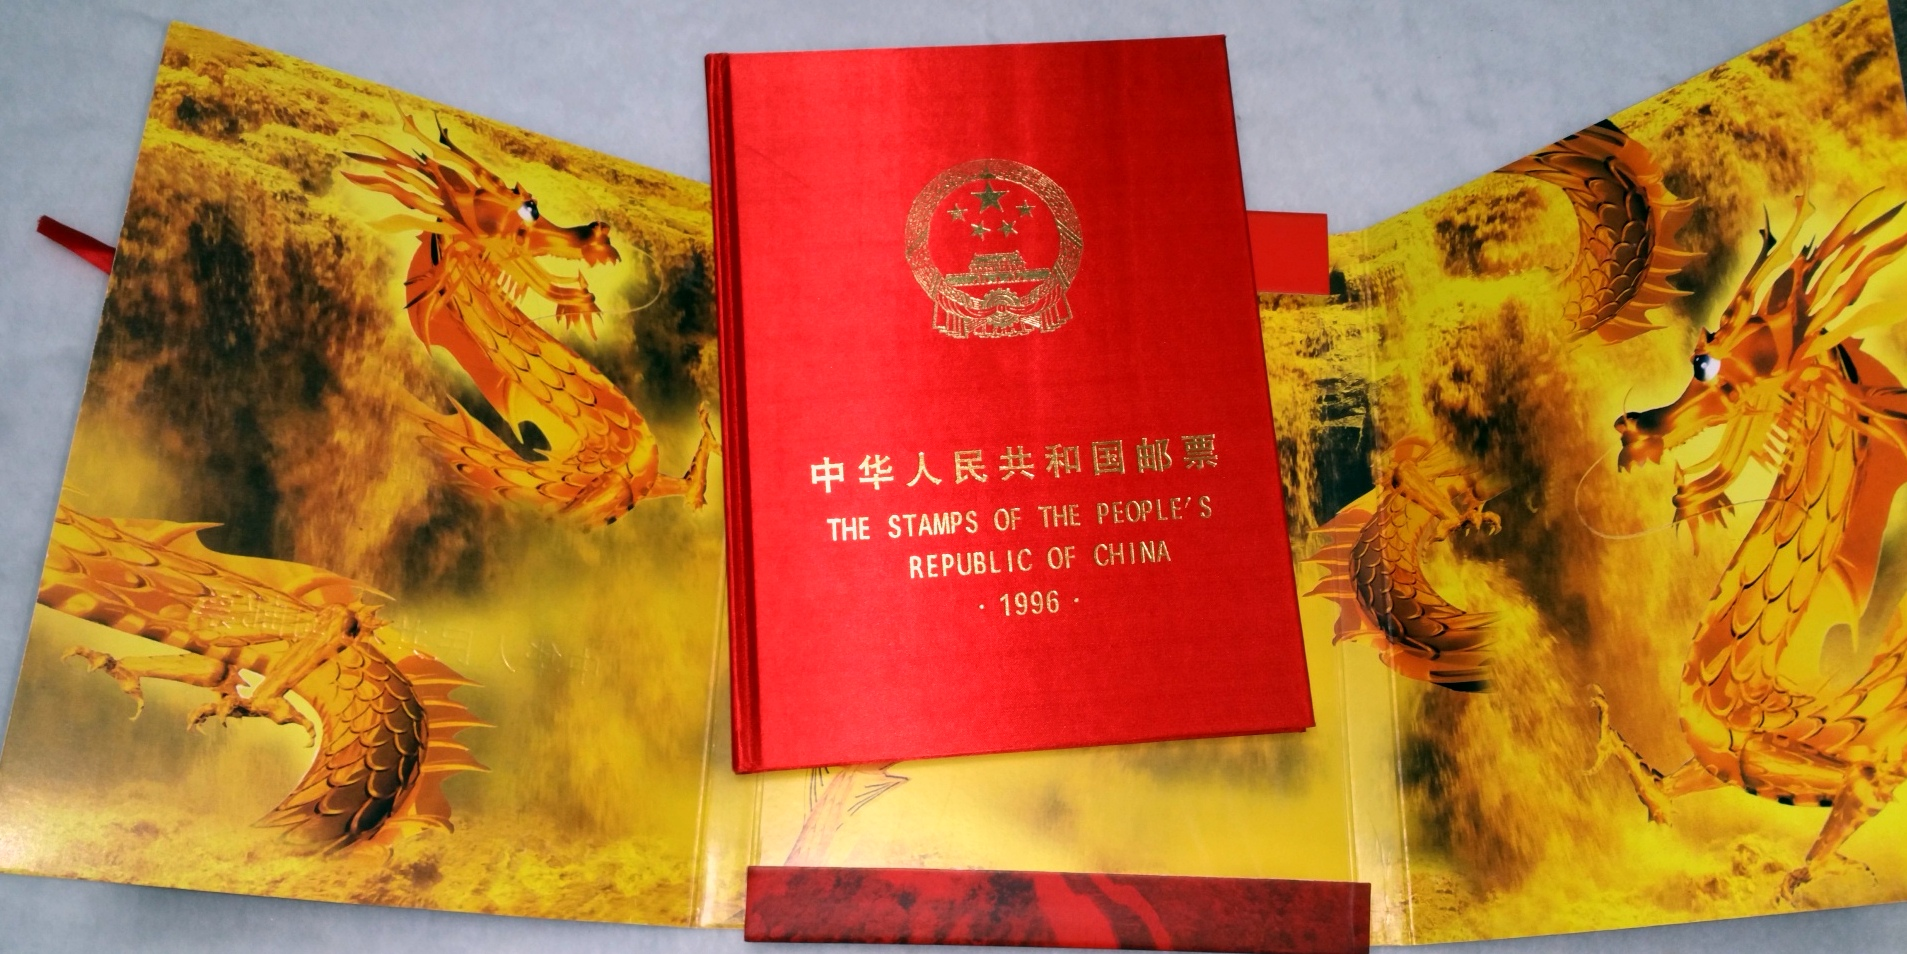 Image for Chinese Stamps Issued in 1996 [cover Title Reads: The Stamps of the People's Republic of China, 1996]